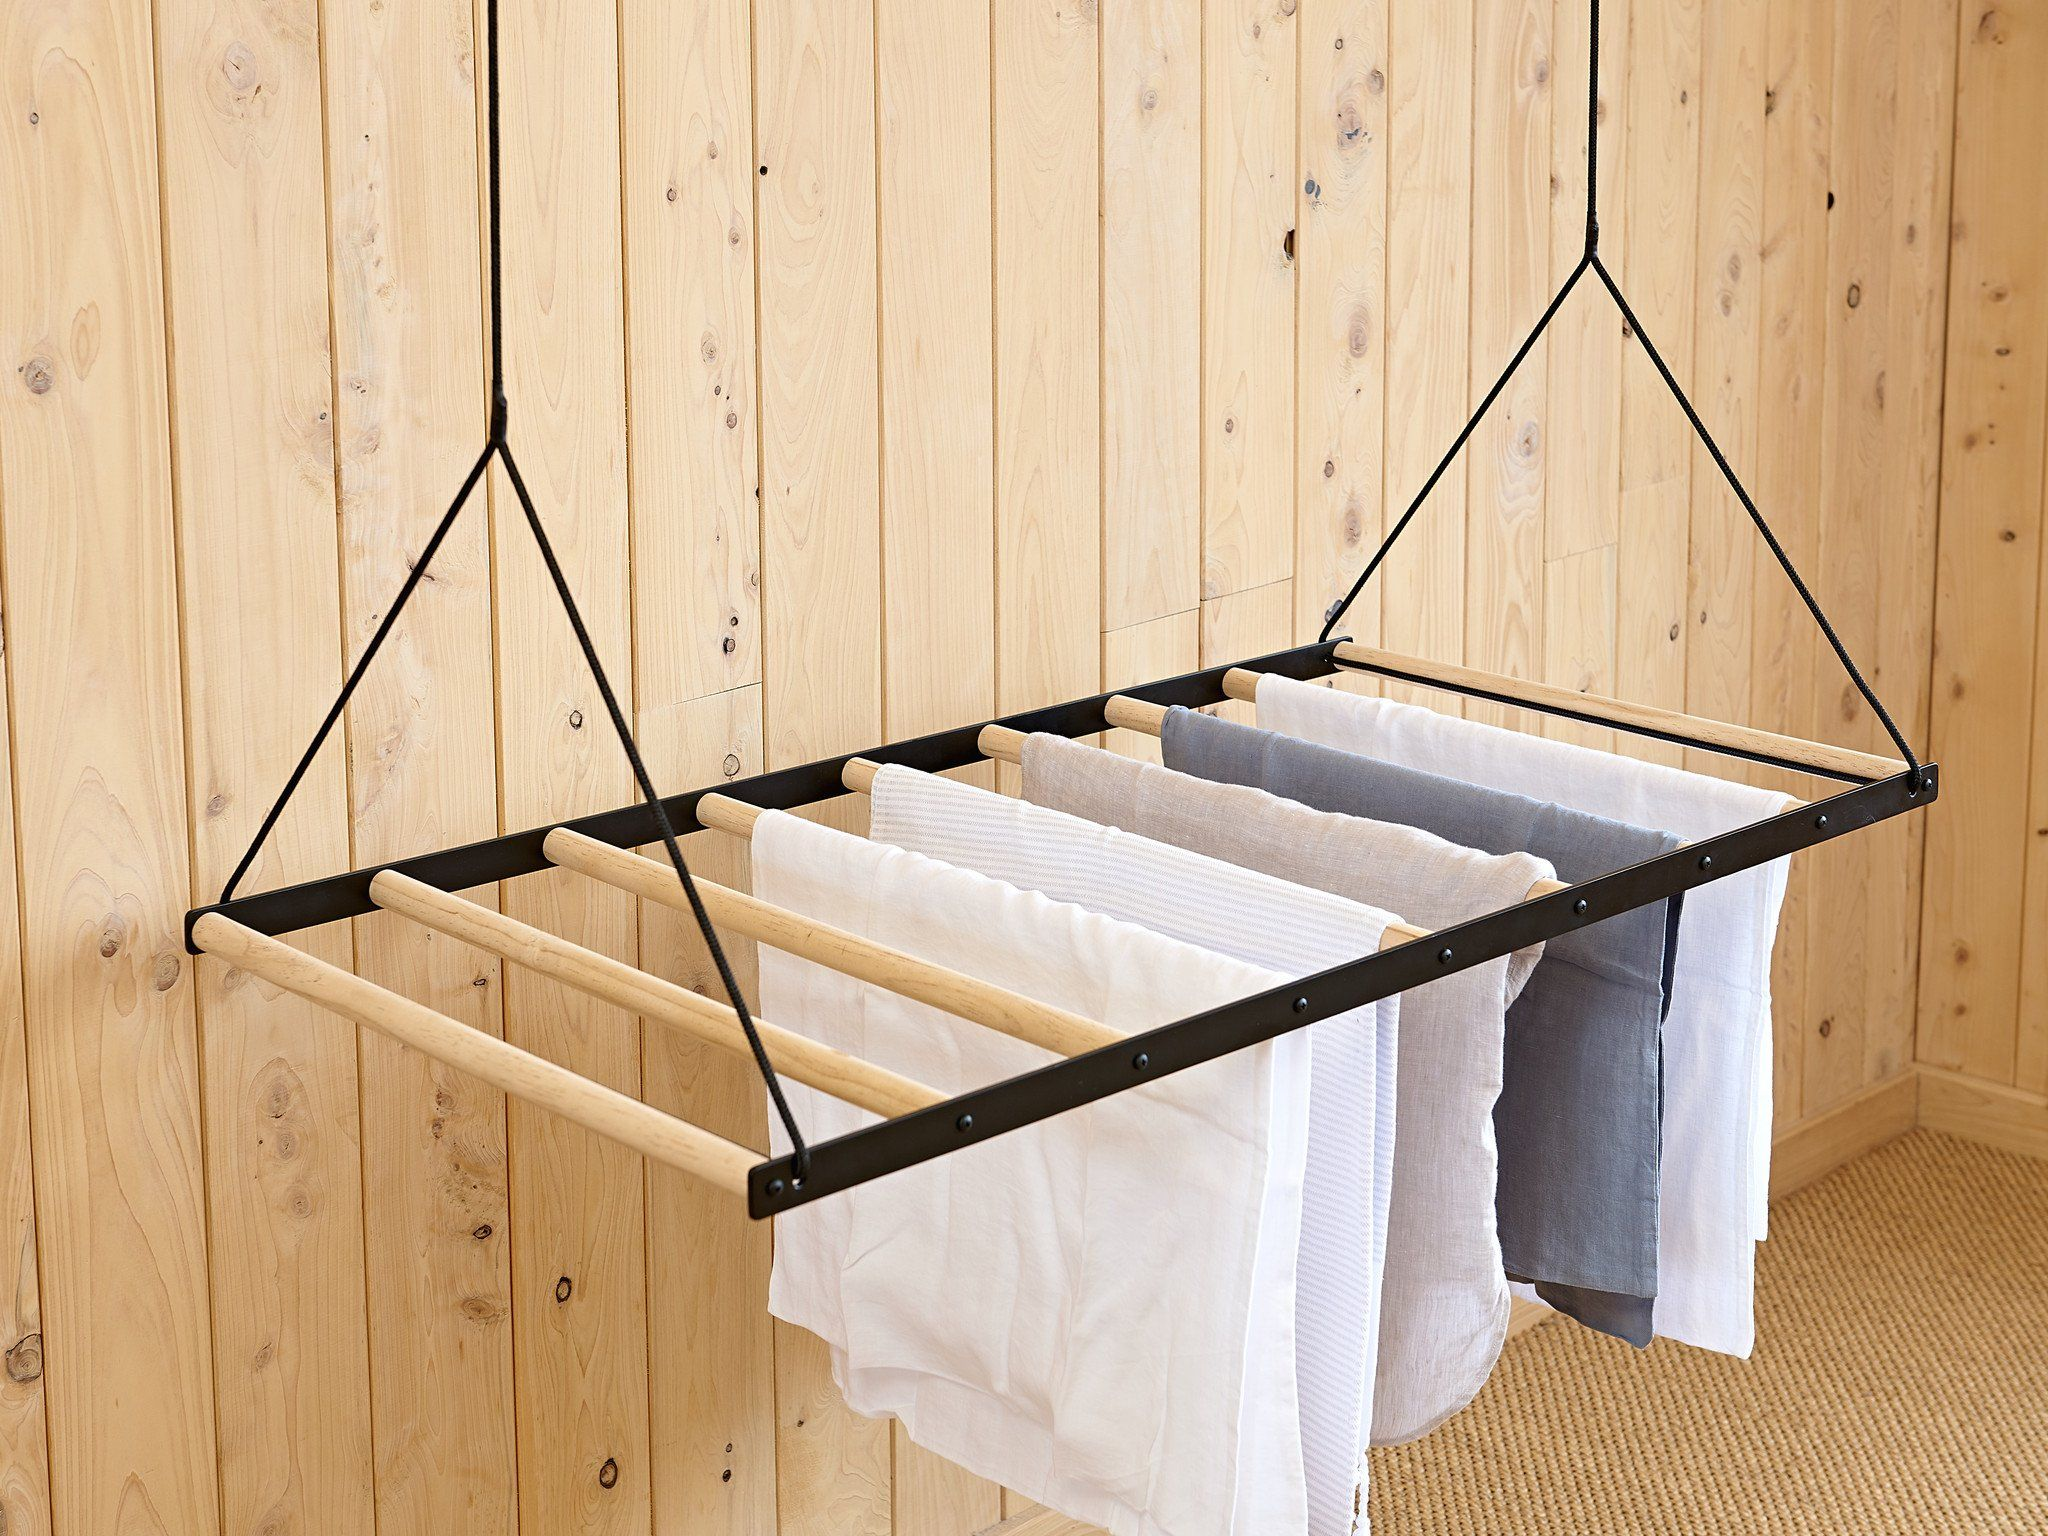 Hanging Drying Rack Hanging Clothes Drying Rack Hanging Drying Rack Drying Rack Laundry